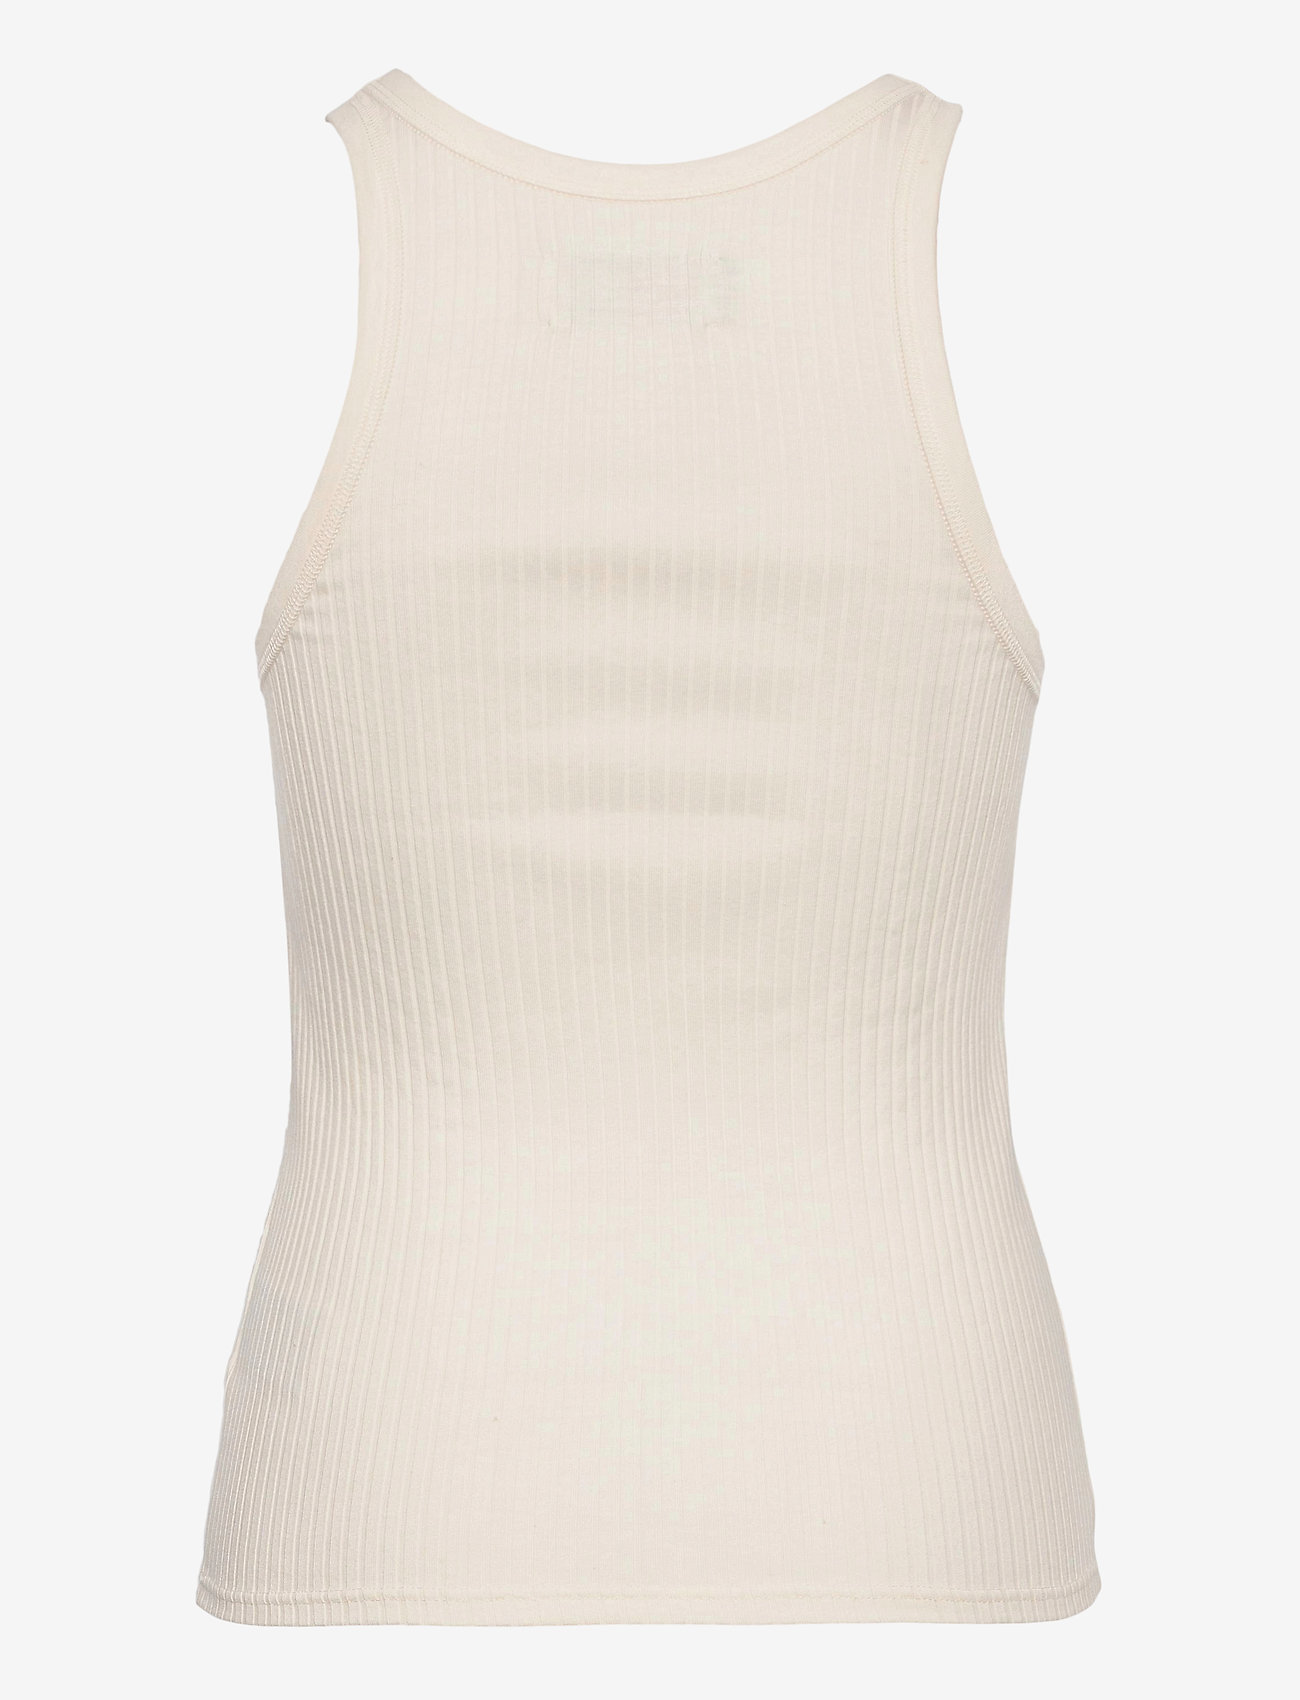 Zadig & Voltaire - STACY ECO CAPSULE TANK TOP - Ærmeløse toppe - chalk - 1